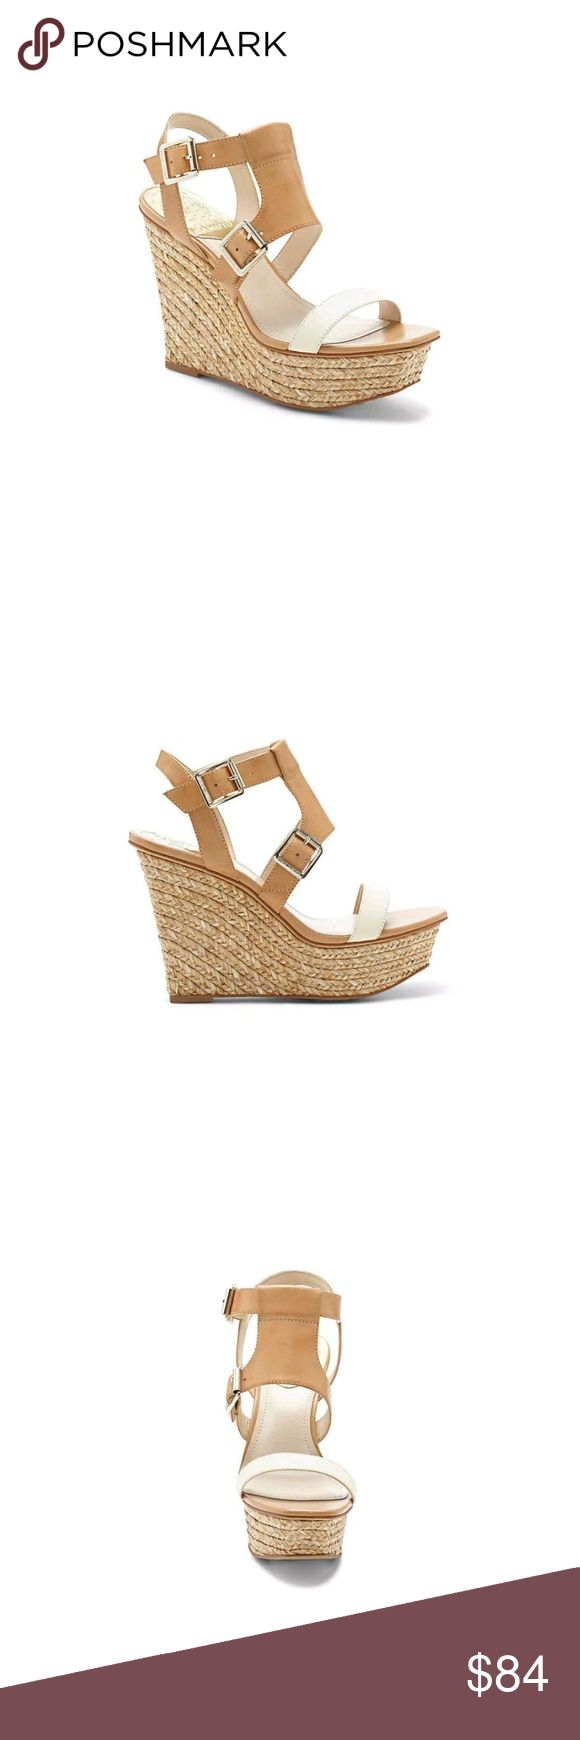 """Sz 7.5M Vince Camuto Noli Platform Wedges Women's VINCE CAMUTO NOLI OPEN TOE Wedge CLOUD CREAM SANDALS, Size 7.5M VC-NOLI  Style #: VC-Noli  Color: Cloud Cream  Material: Leather Outback Veg Vachetta  Suggested Retail Price $110.00  A sleek espadrille is ready to roam the streets in two-tone leather. The Noli from Vince Camuto sports logo buckles that add a glittering touch this high fashion wedge.  4.3"""" heel; 1.5"""" platform  Worn once Vince Camuto Shoes Platforms"""